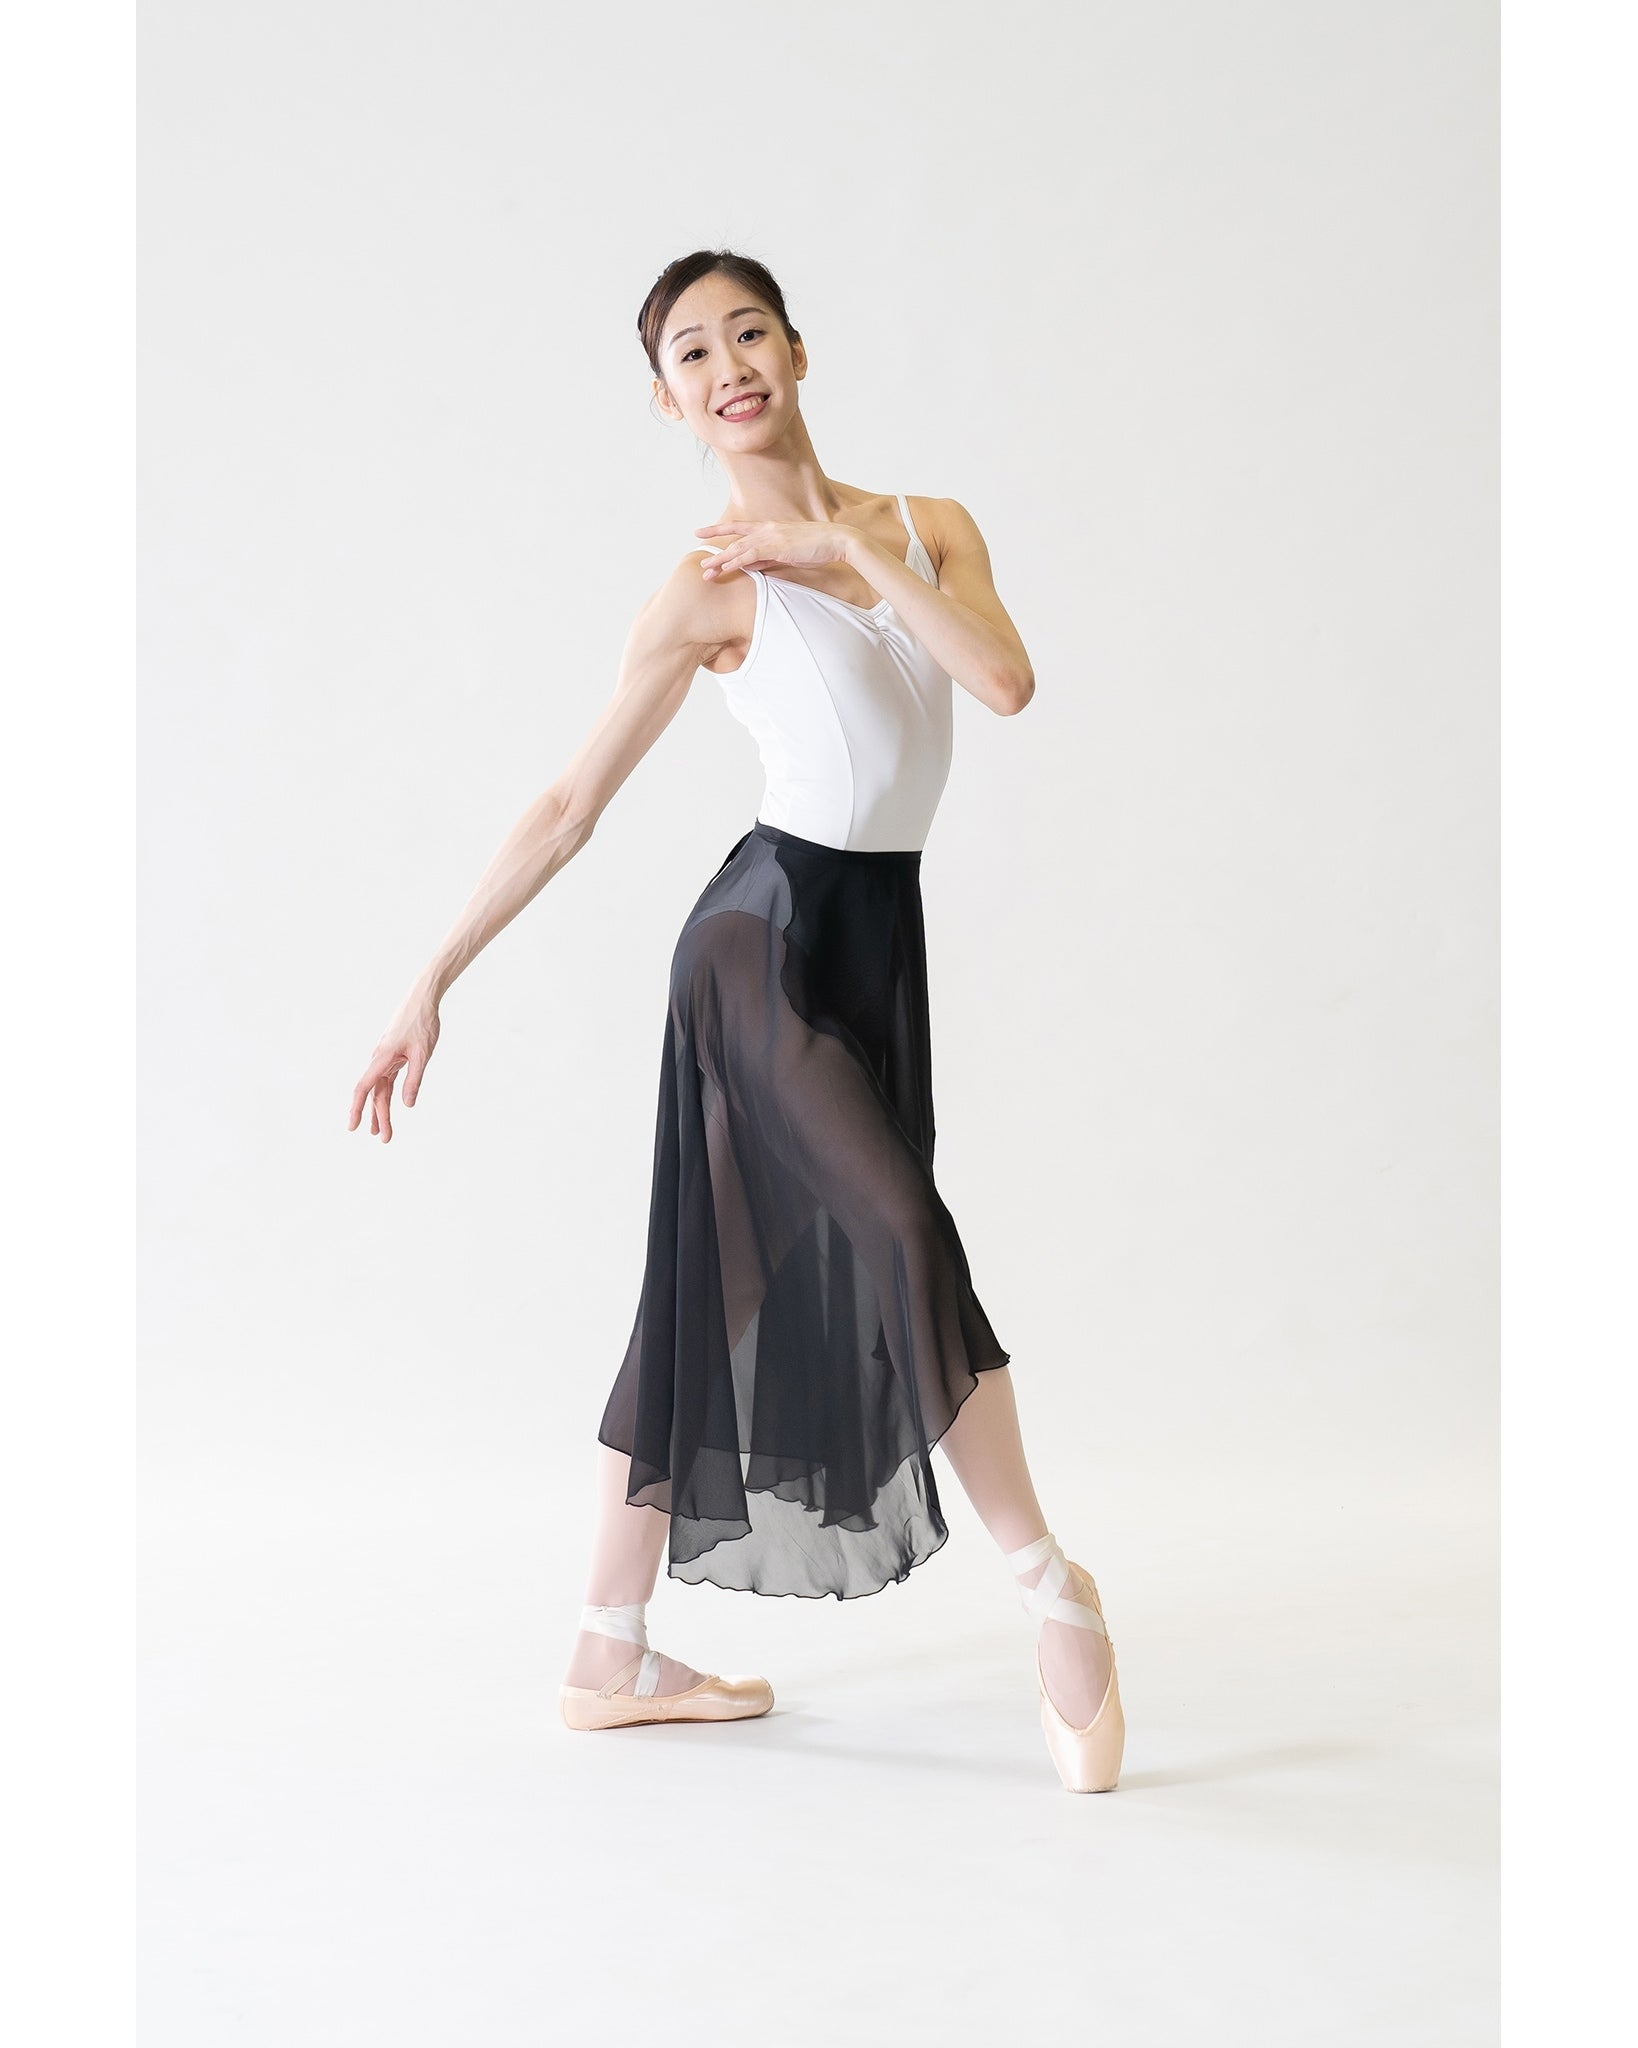 Sonata Rehearsal Long Wrap Skirt - WSK14 Womens - Dancewear - Skirts - Dancewear Centre Canada